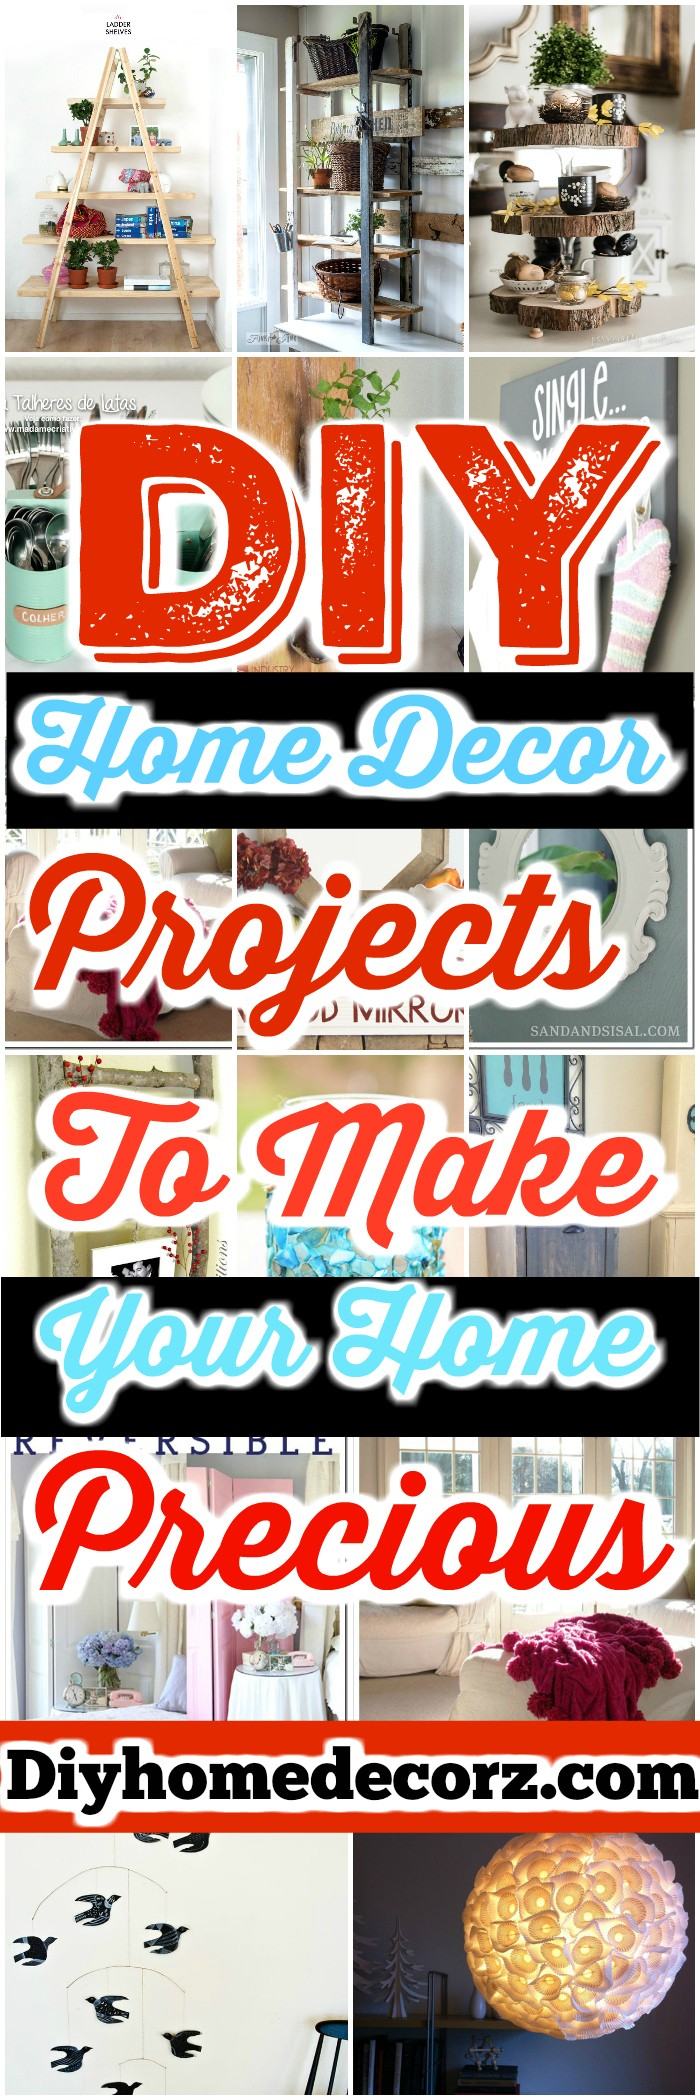 DIY Home Decor Projects DIY Home Decor Projects To Make Your Home Precious